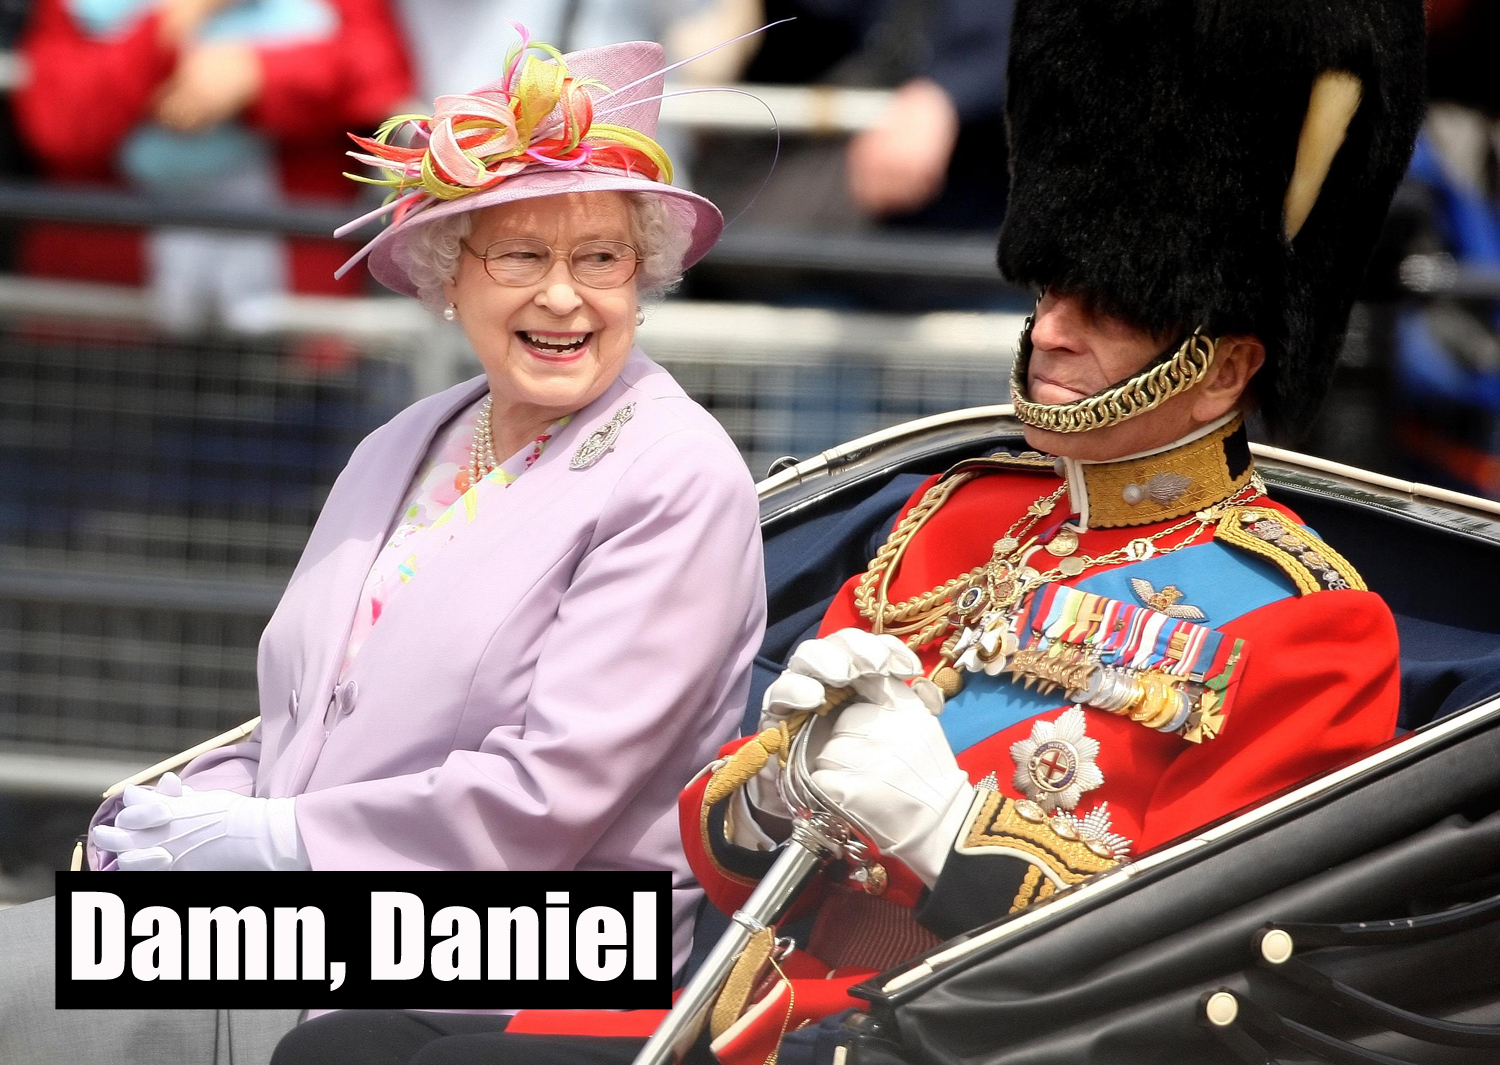 The Duke of Edinburgh and the Queen look happy (Dominic Lipinski/PA)